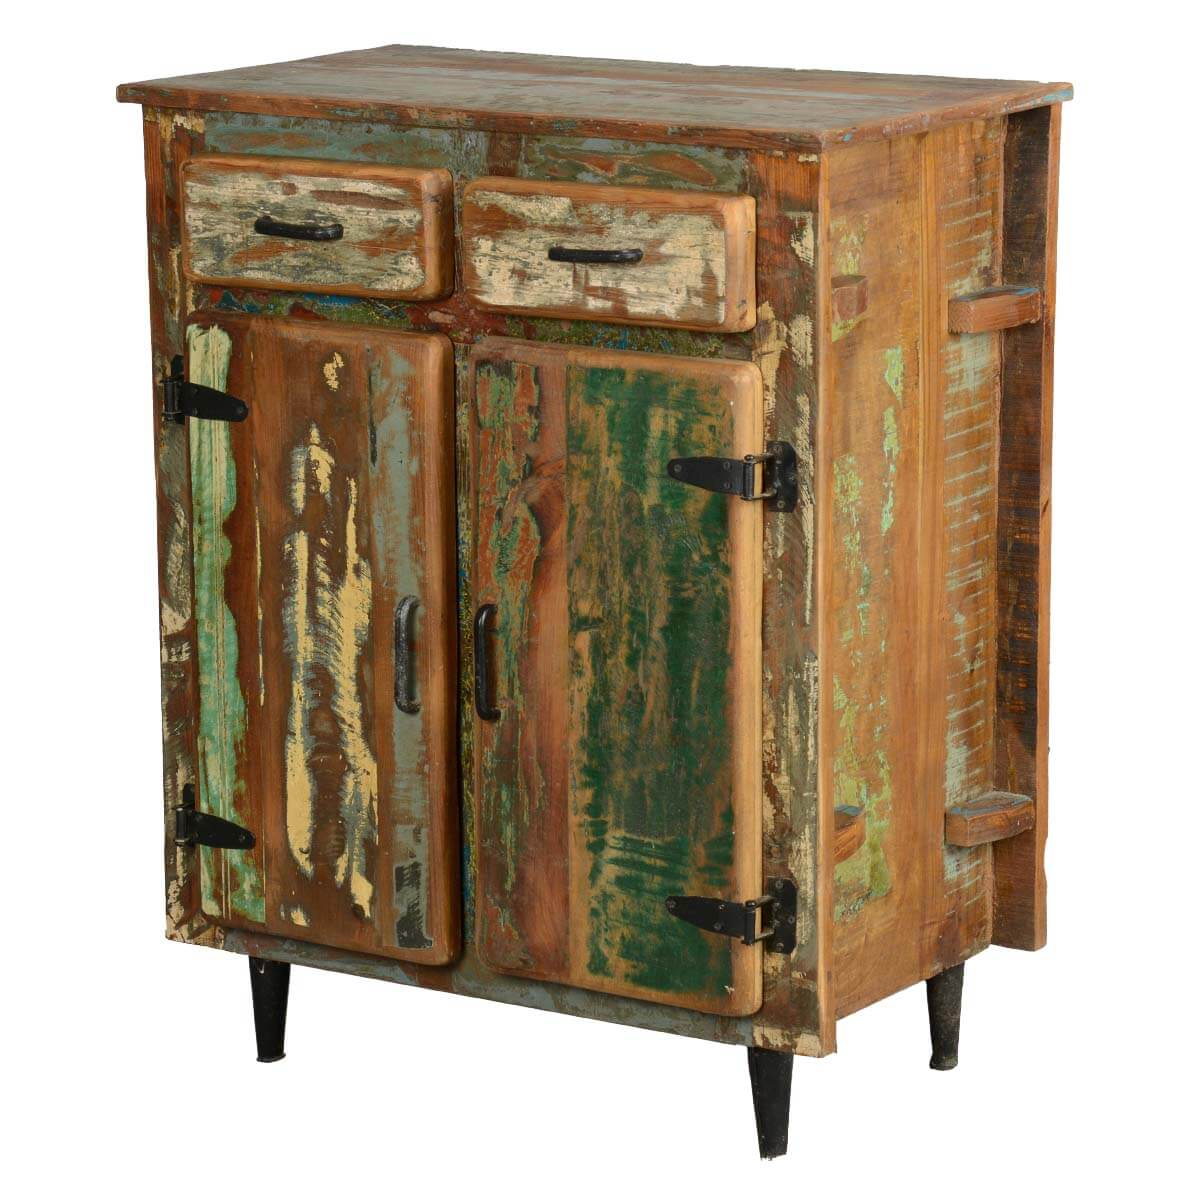 Rustic Wood Kitchen : Appalachian Rustic Painted Old Wood Standing Kitchen Utility Cabinet